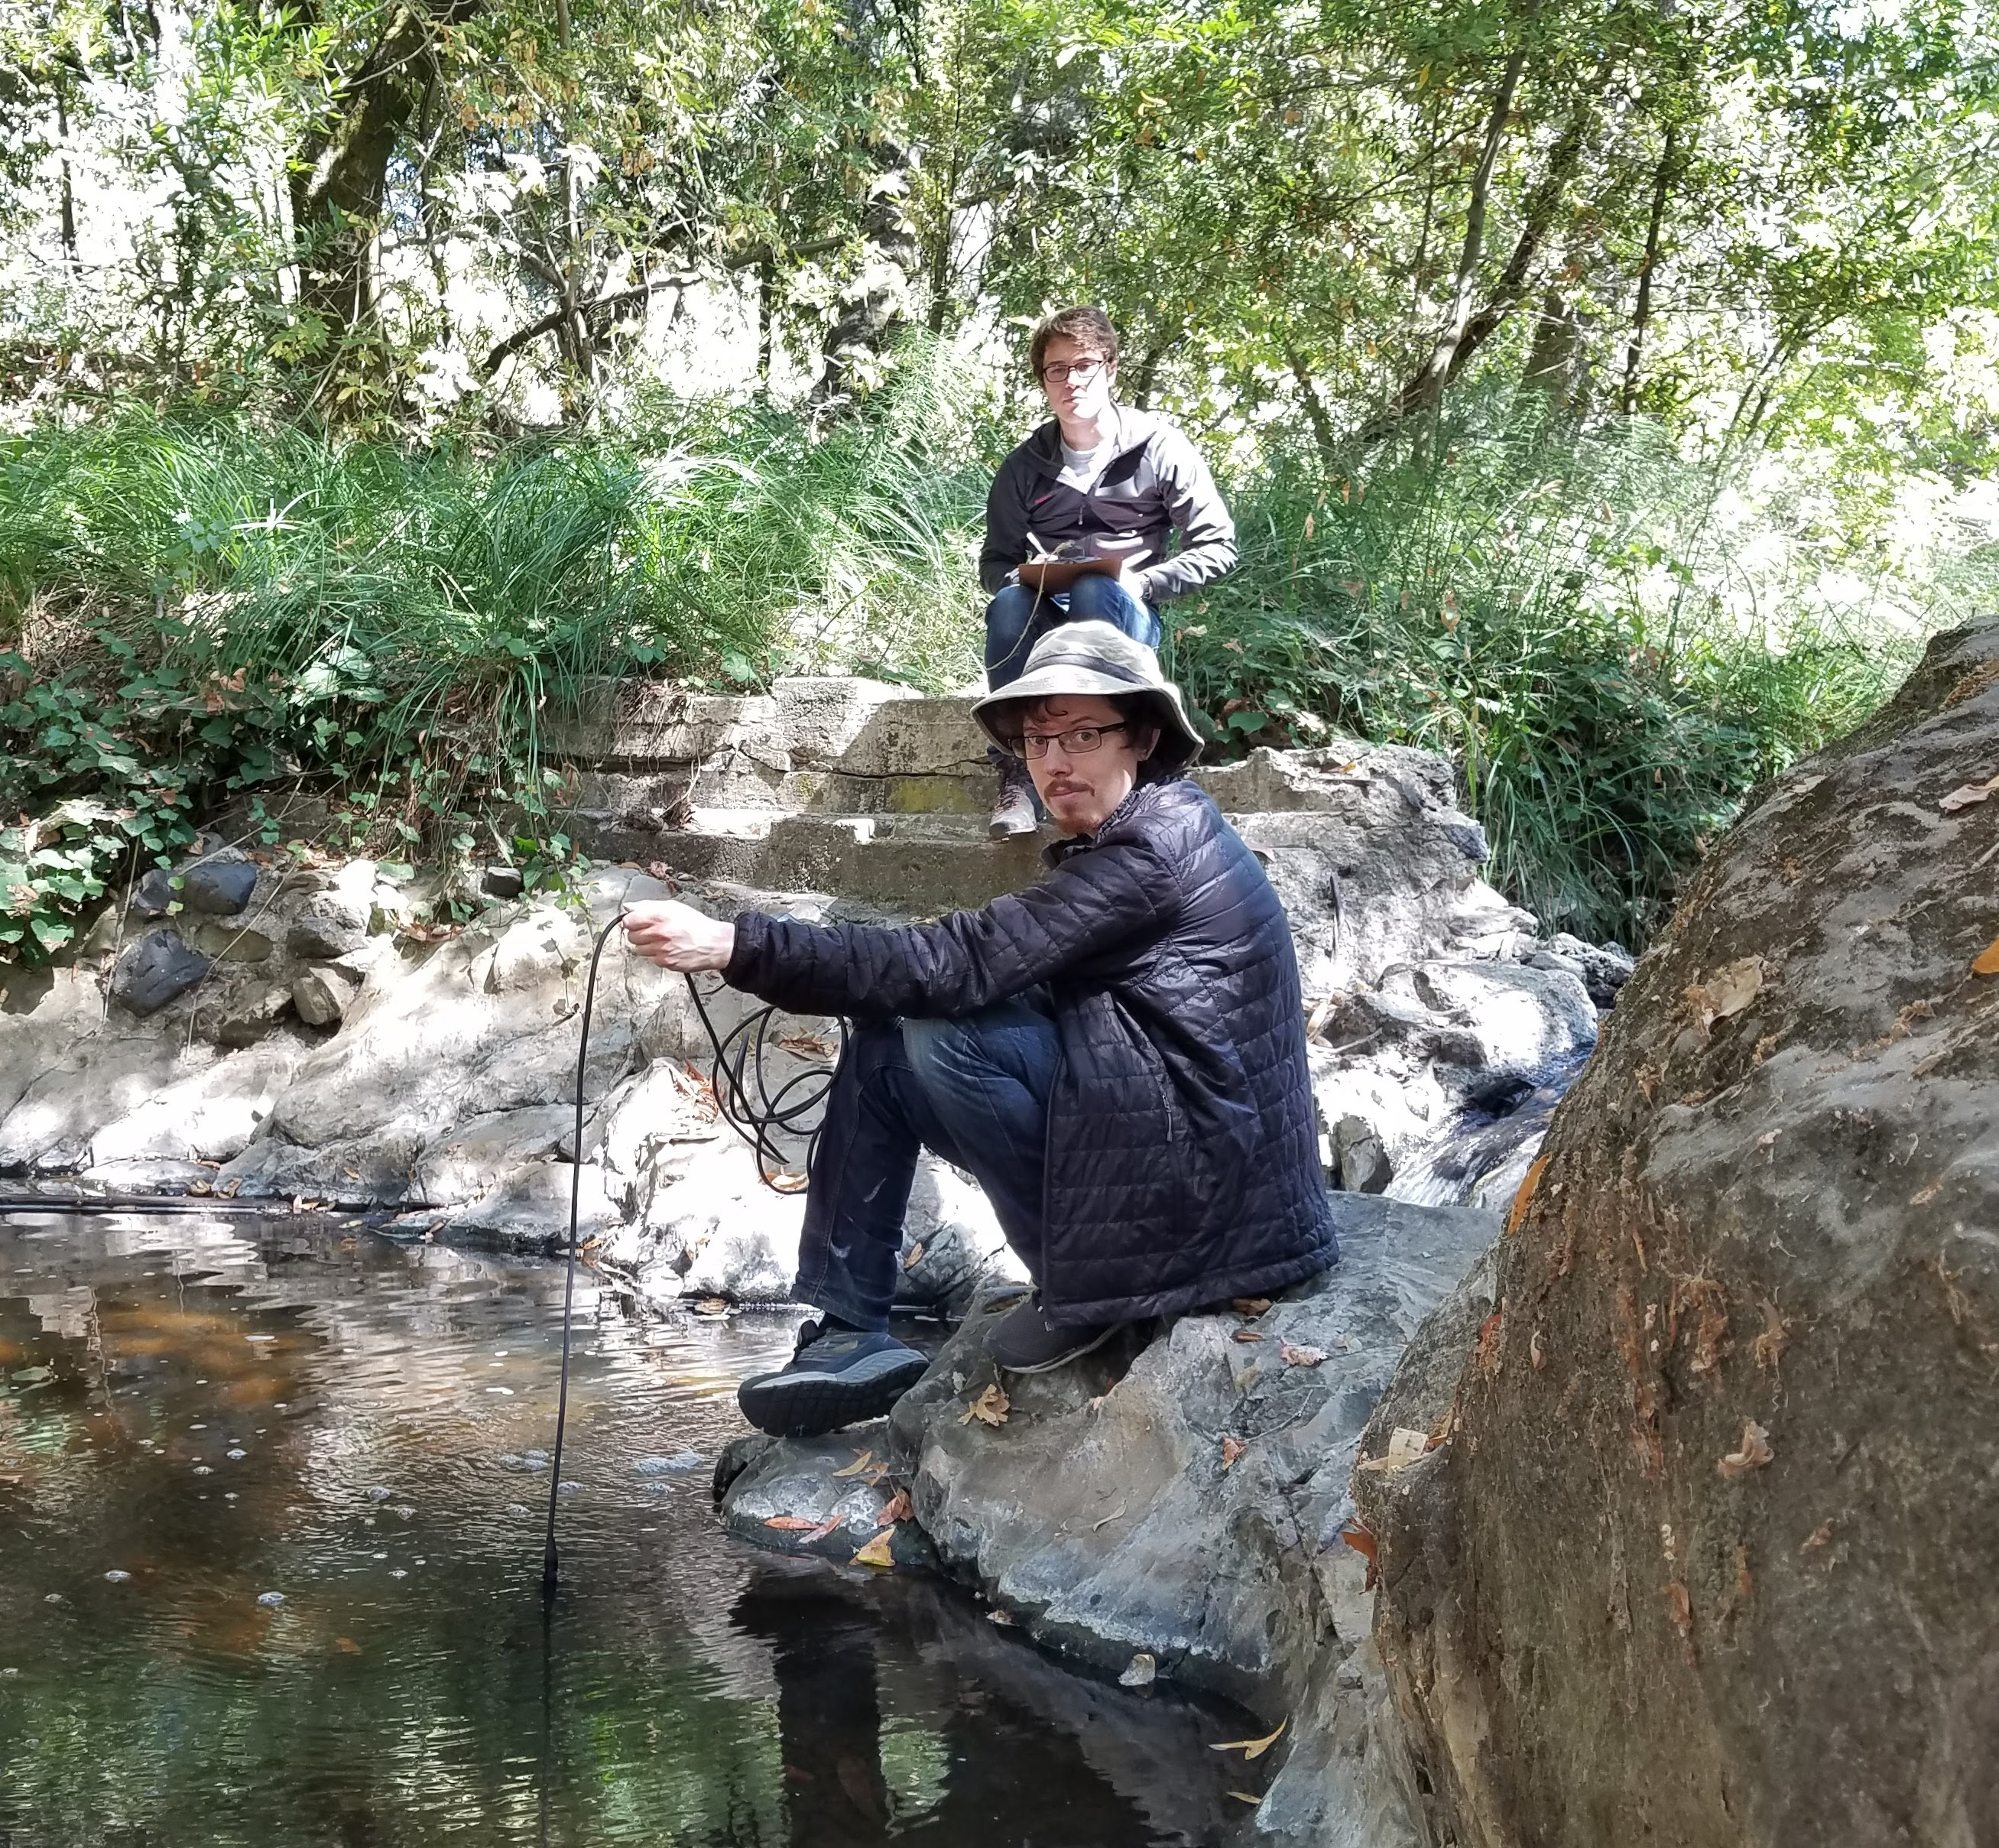 The Watershed Project staff monitor San Pablo Creek site